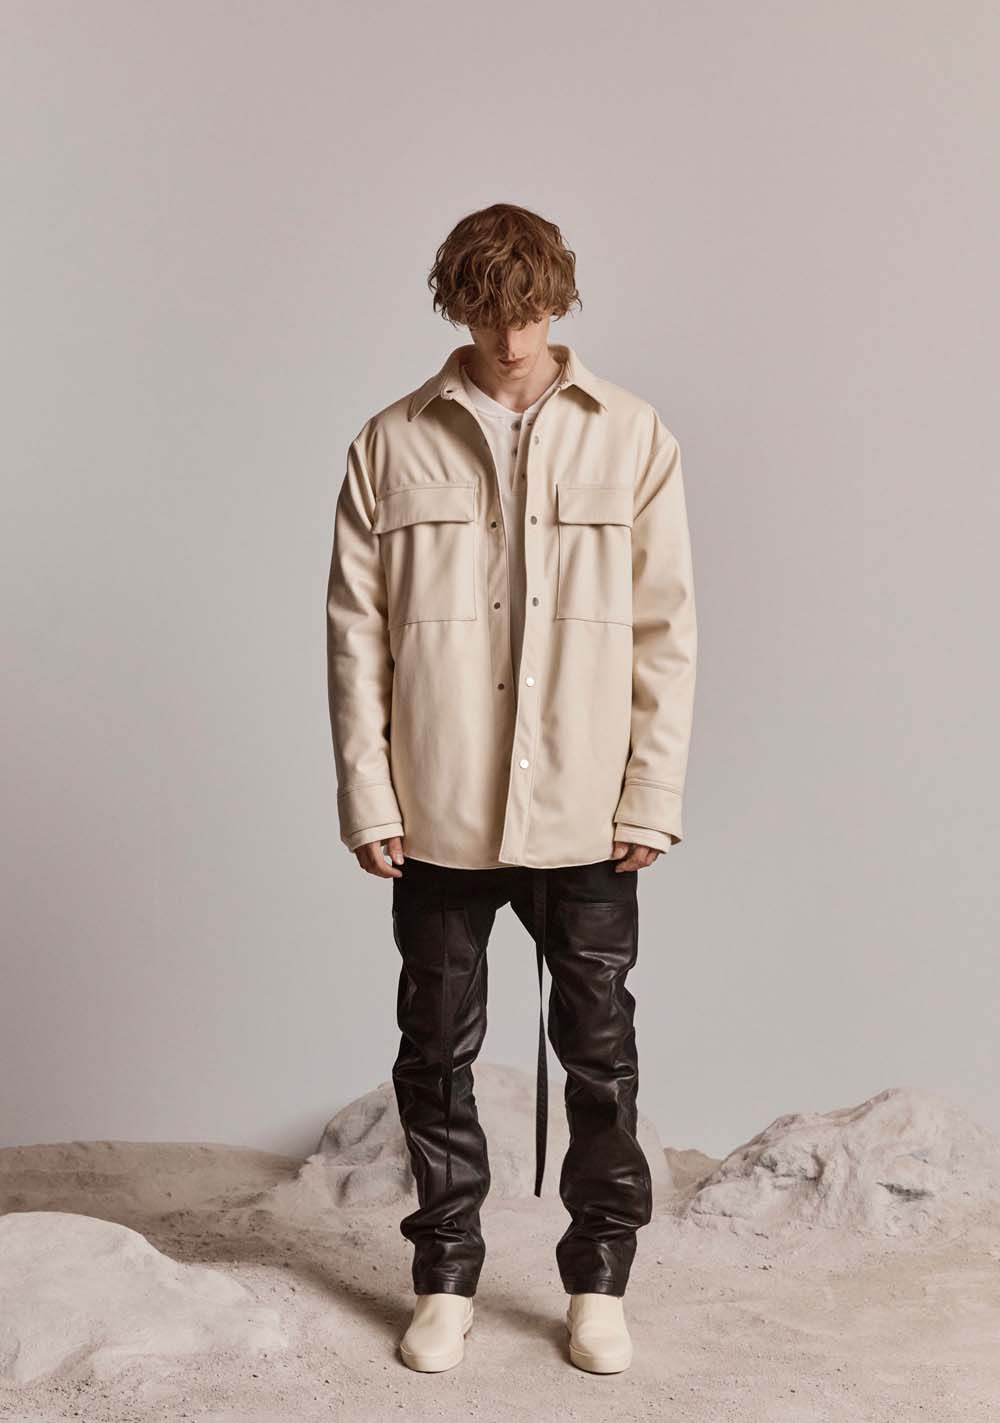 https_%2F%2Fhypebeast.com%2Fimage%2F2018%2F09%2Ffear-of-god-6-sixth-collection-jared-leto-nike-68.jpg